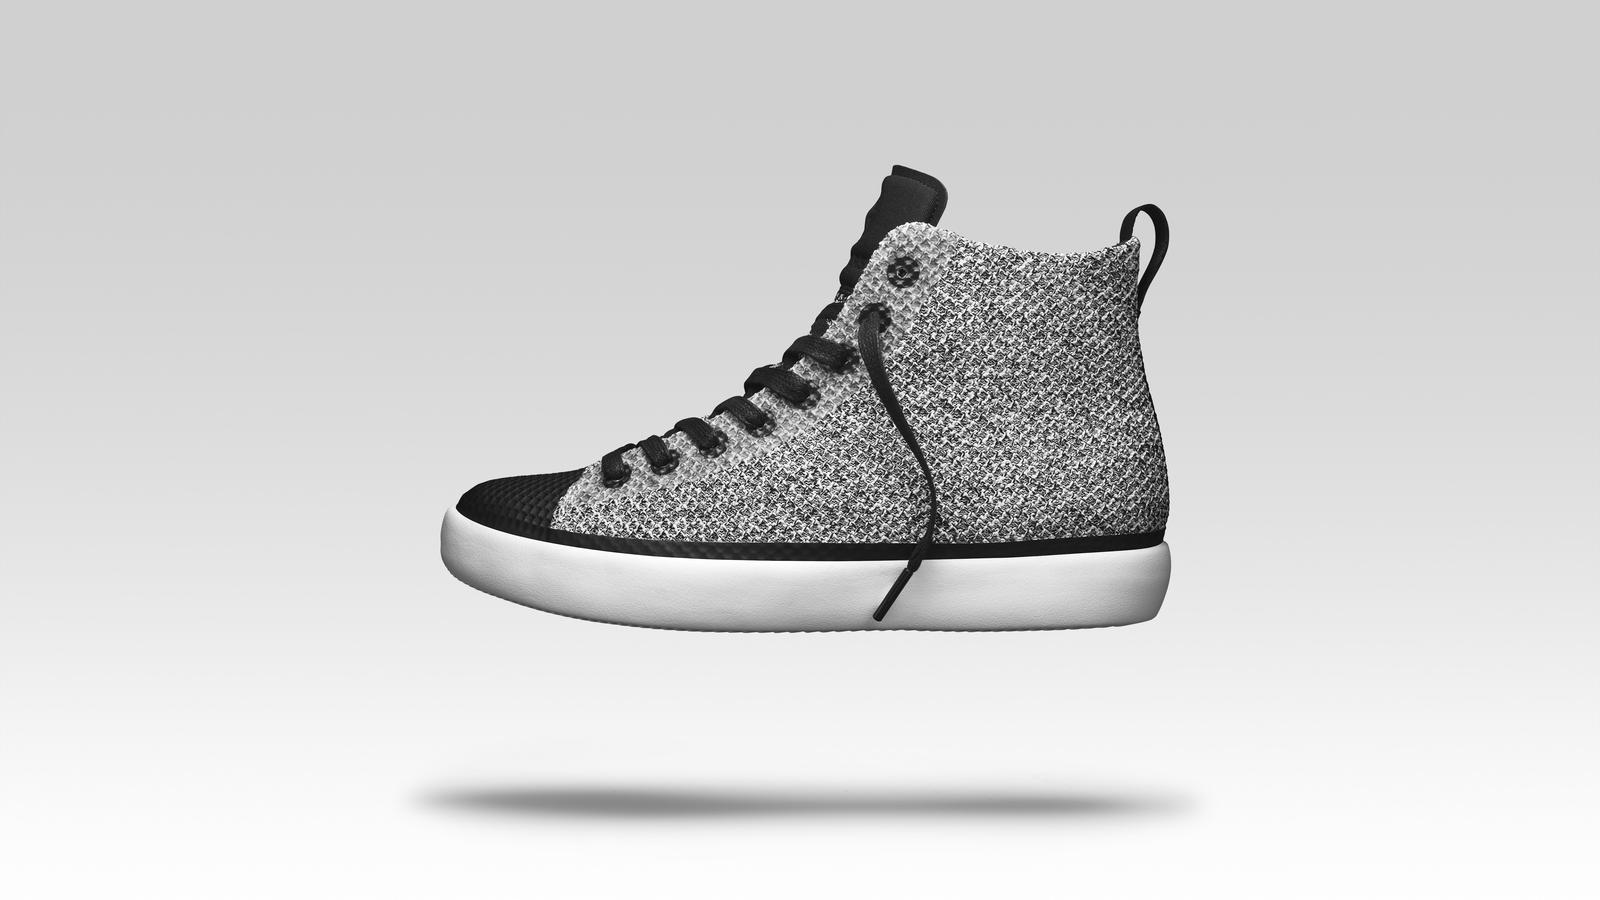 f9bb70d9e961 CONVERSE UNVEILS THE ALL STAR MODERN SNEAKER INSPIRED BY THE 1920 ...